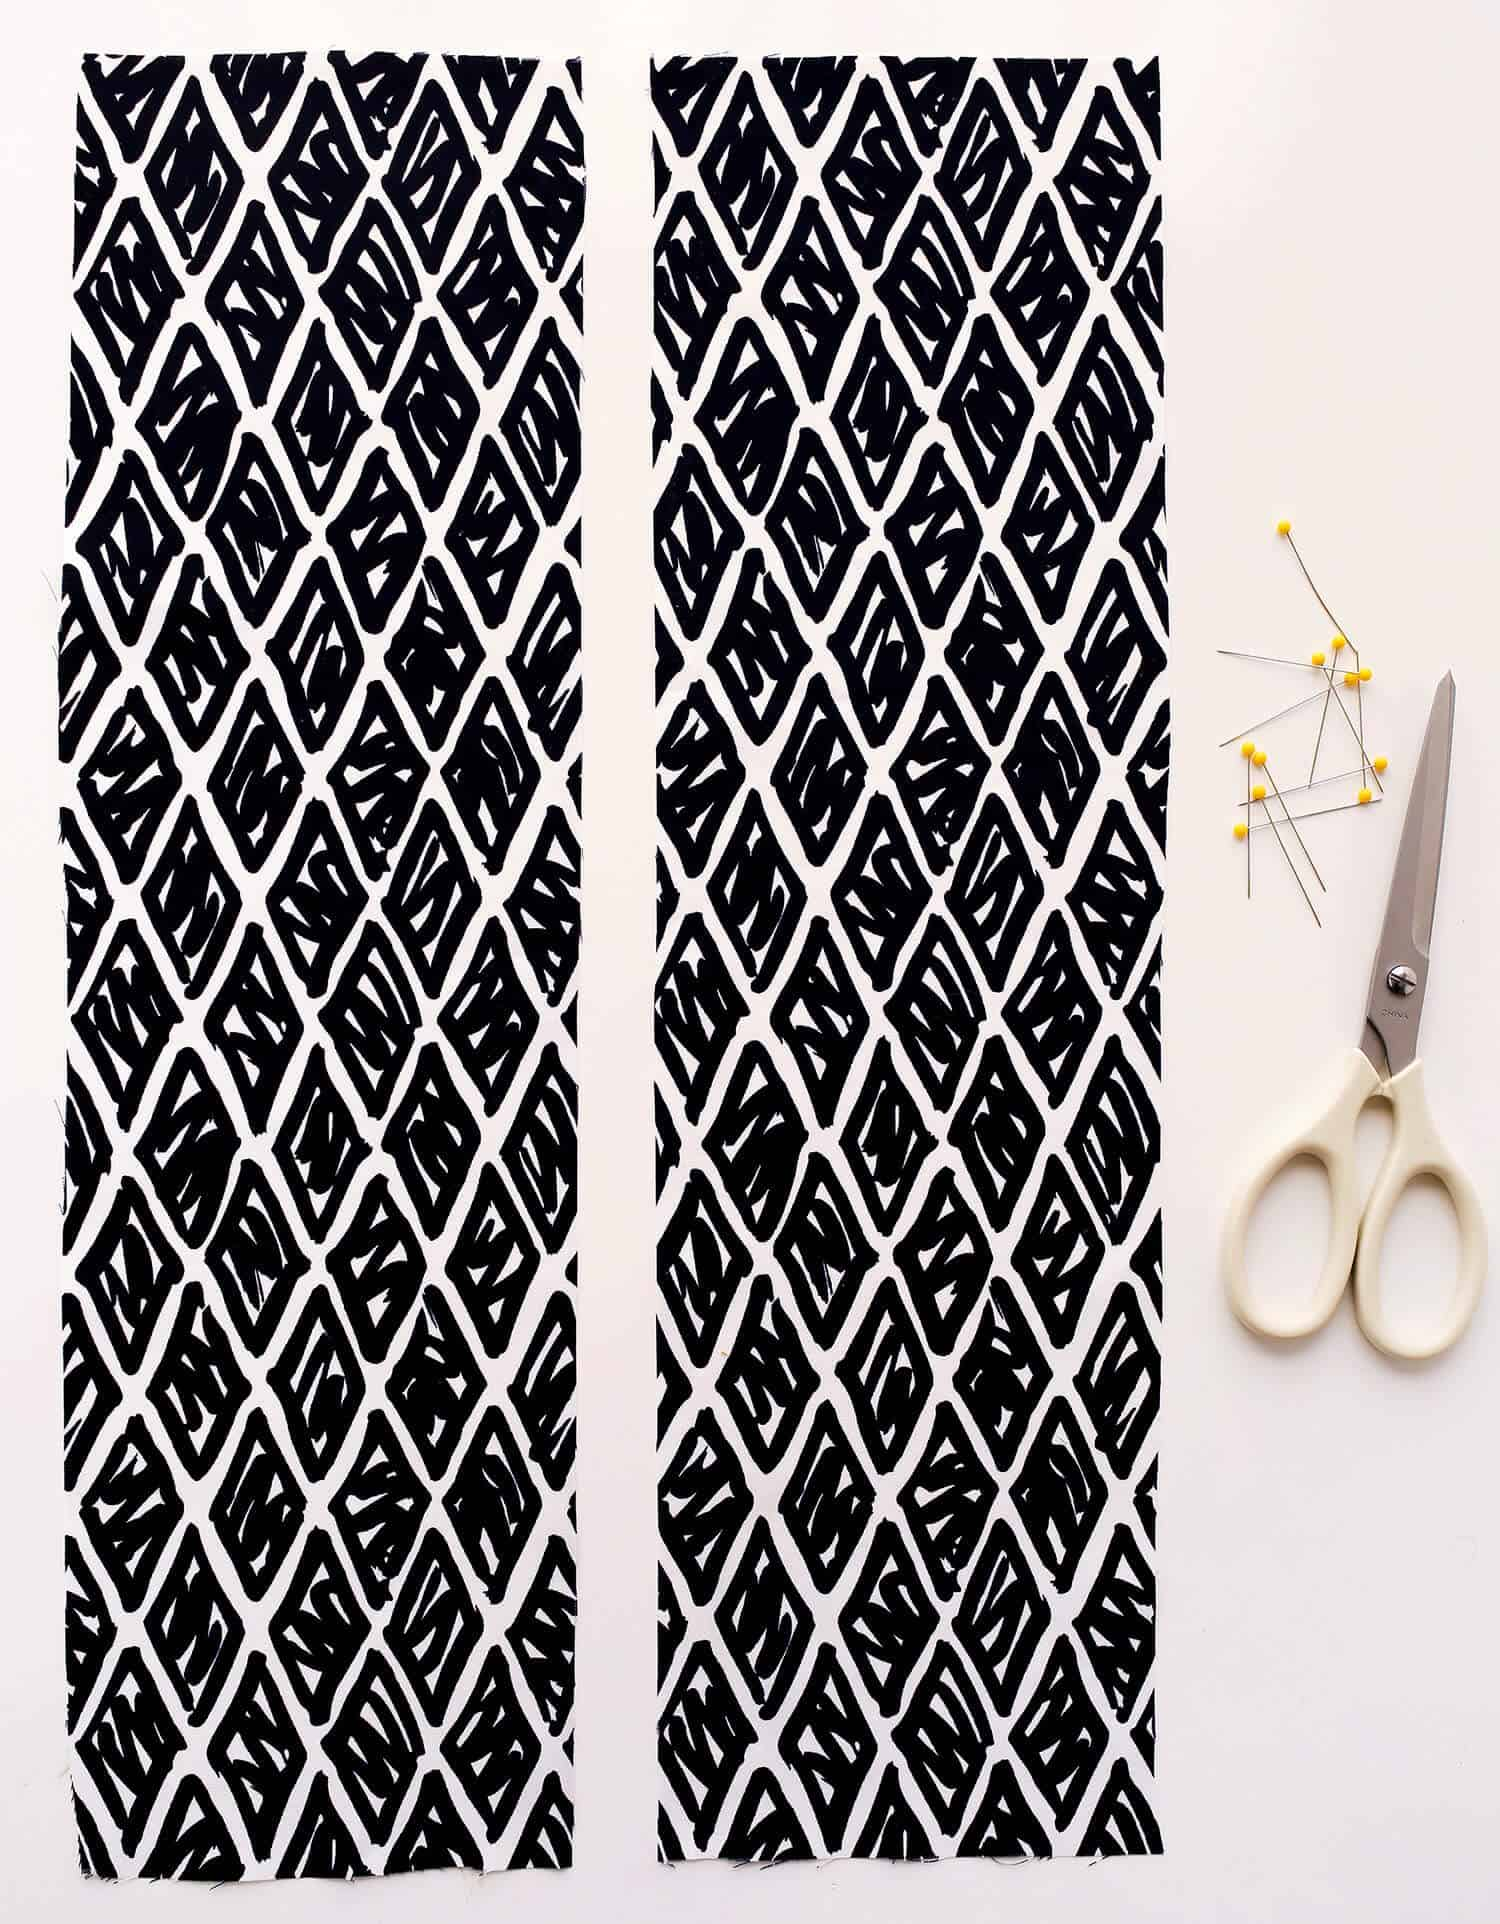 Our Table Is 6u2032 Long So I Designed My Table Runner To Measure 8u2032 Long. I  Prefer A Table Runner That Drapes Over The Ends, But You Can Also Design  Yours To ...